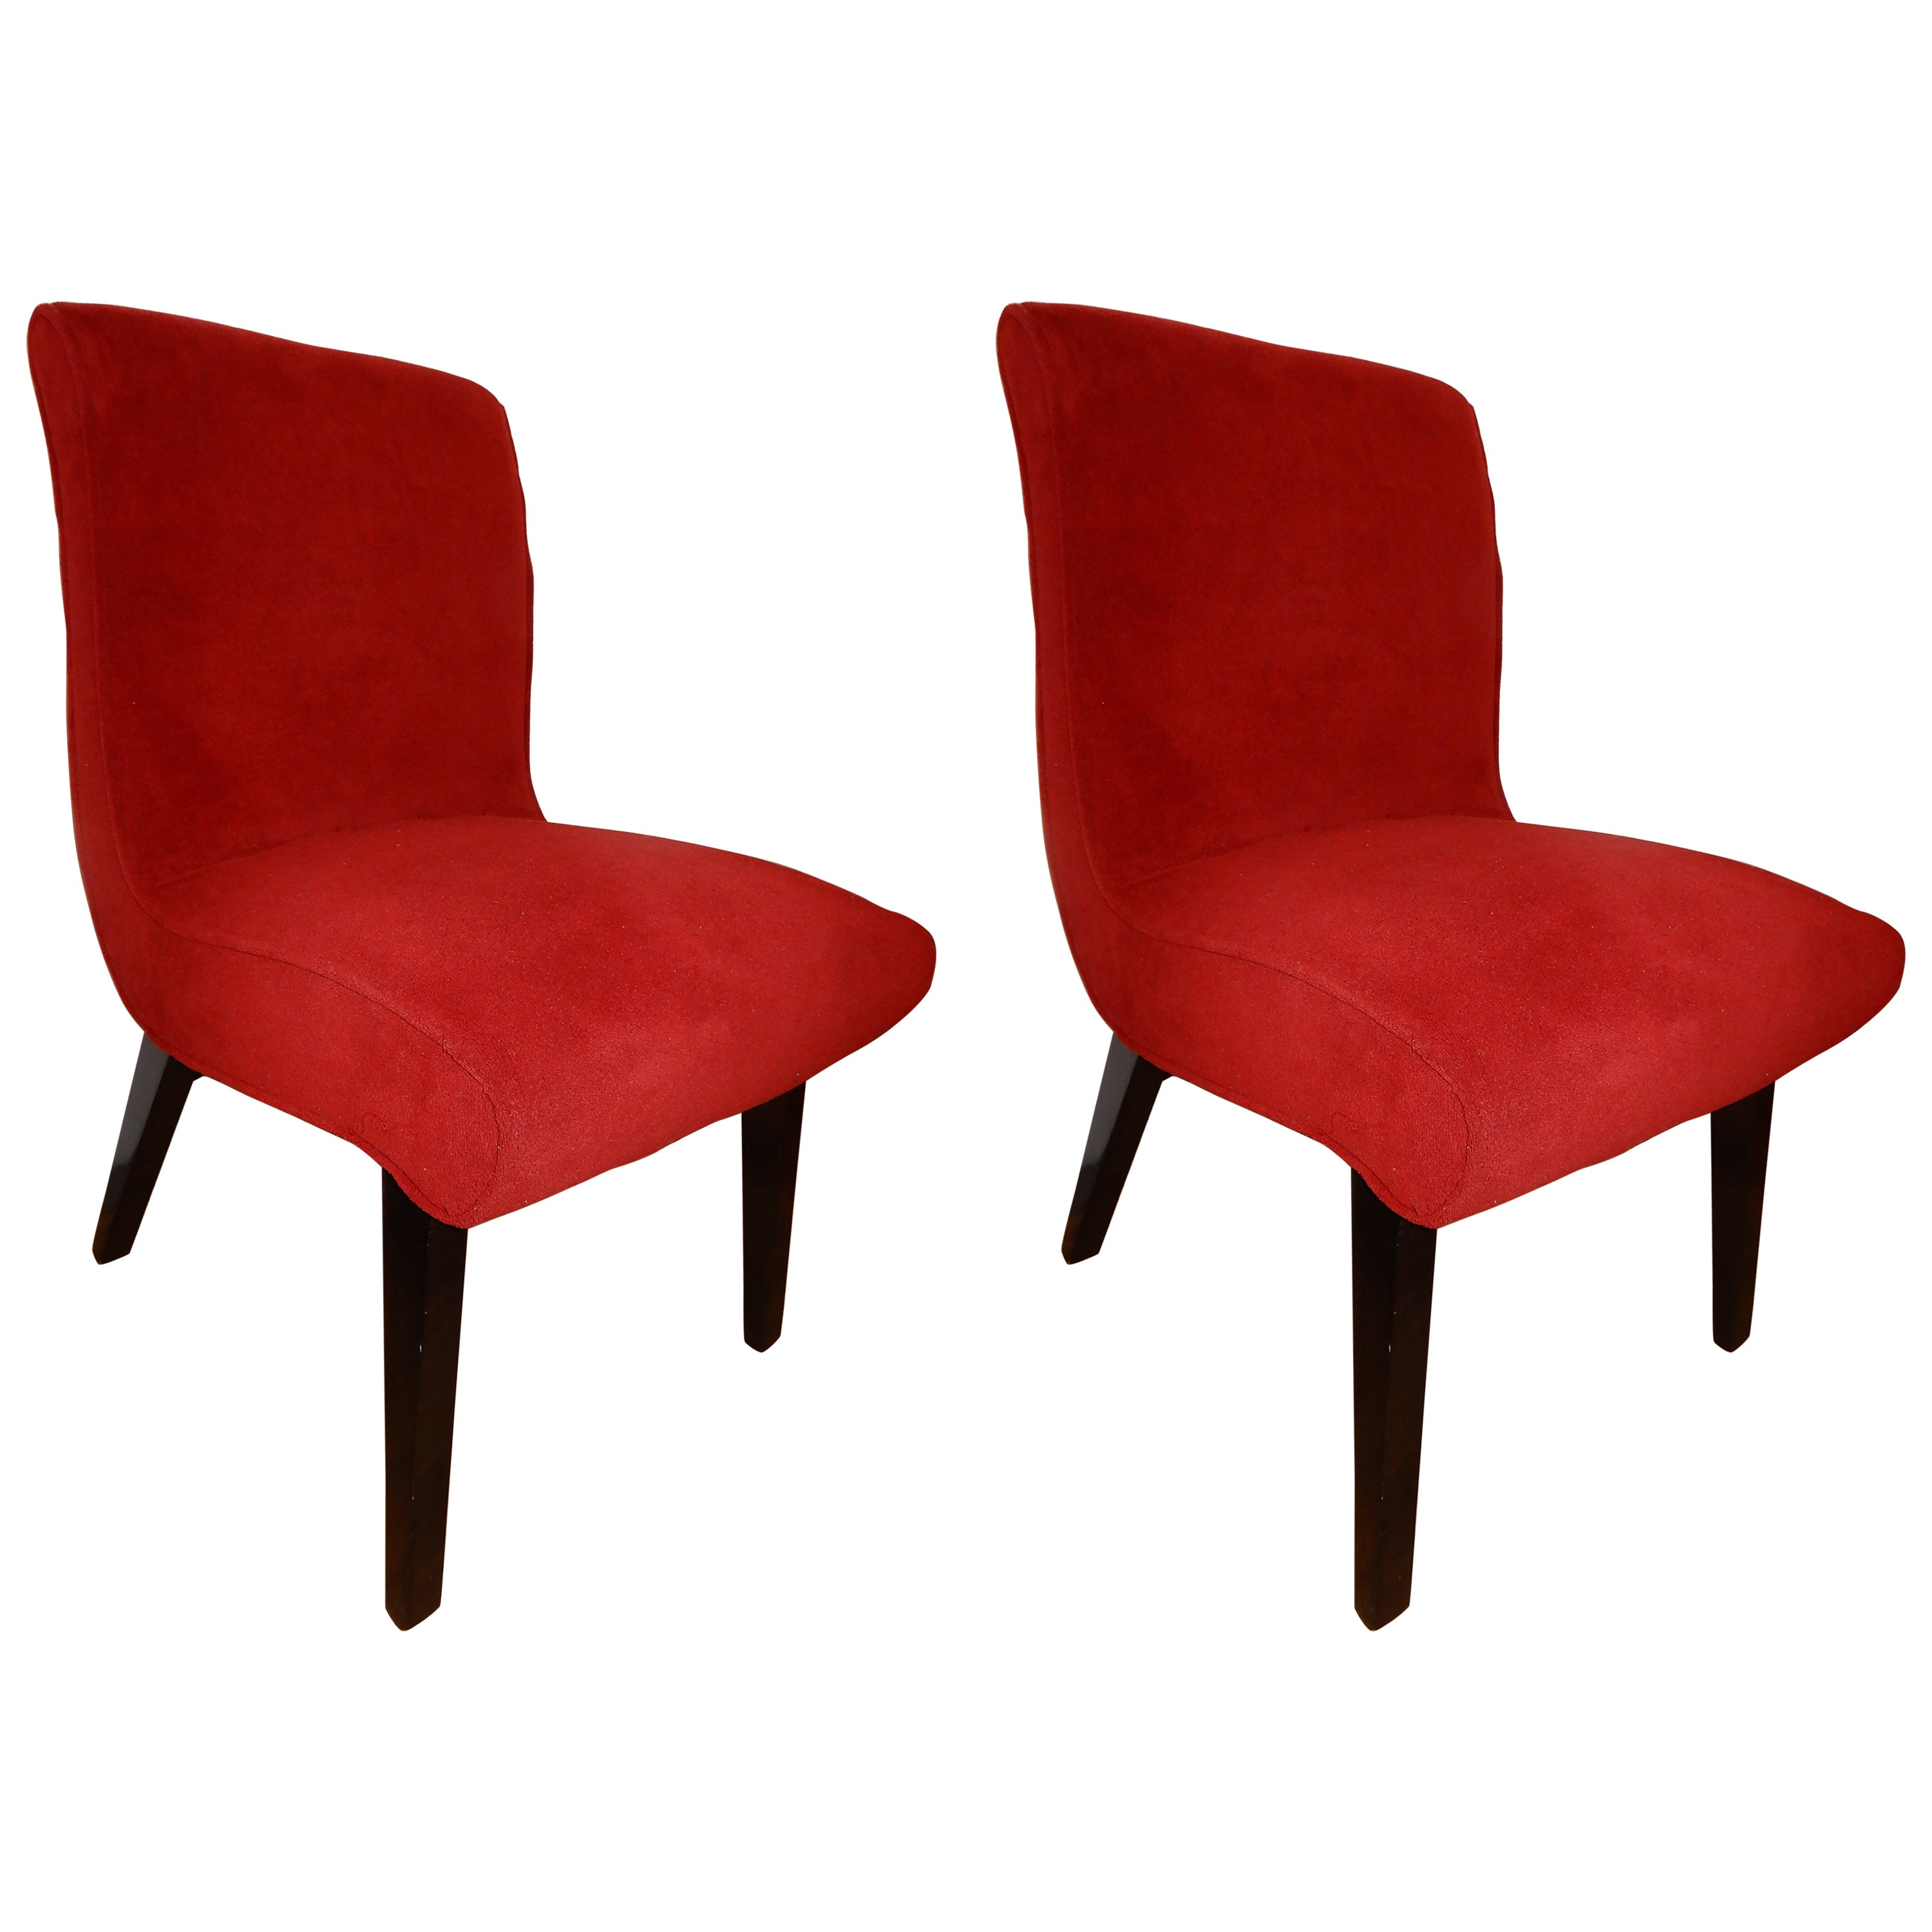 Set of Mid-Century Modern Jens Risom Scoop Chairs for Knoll, 1950s